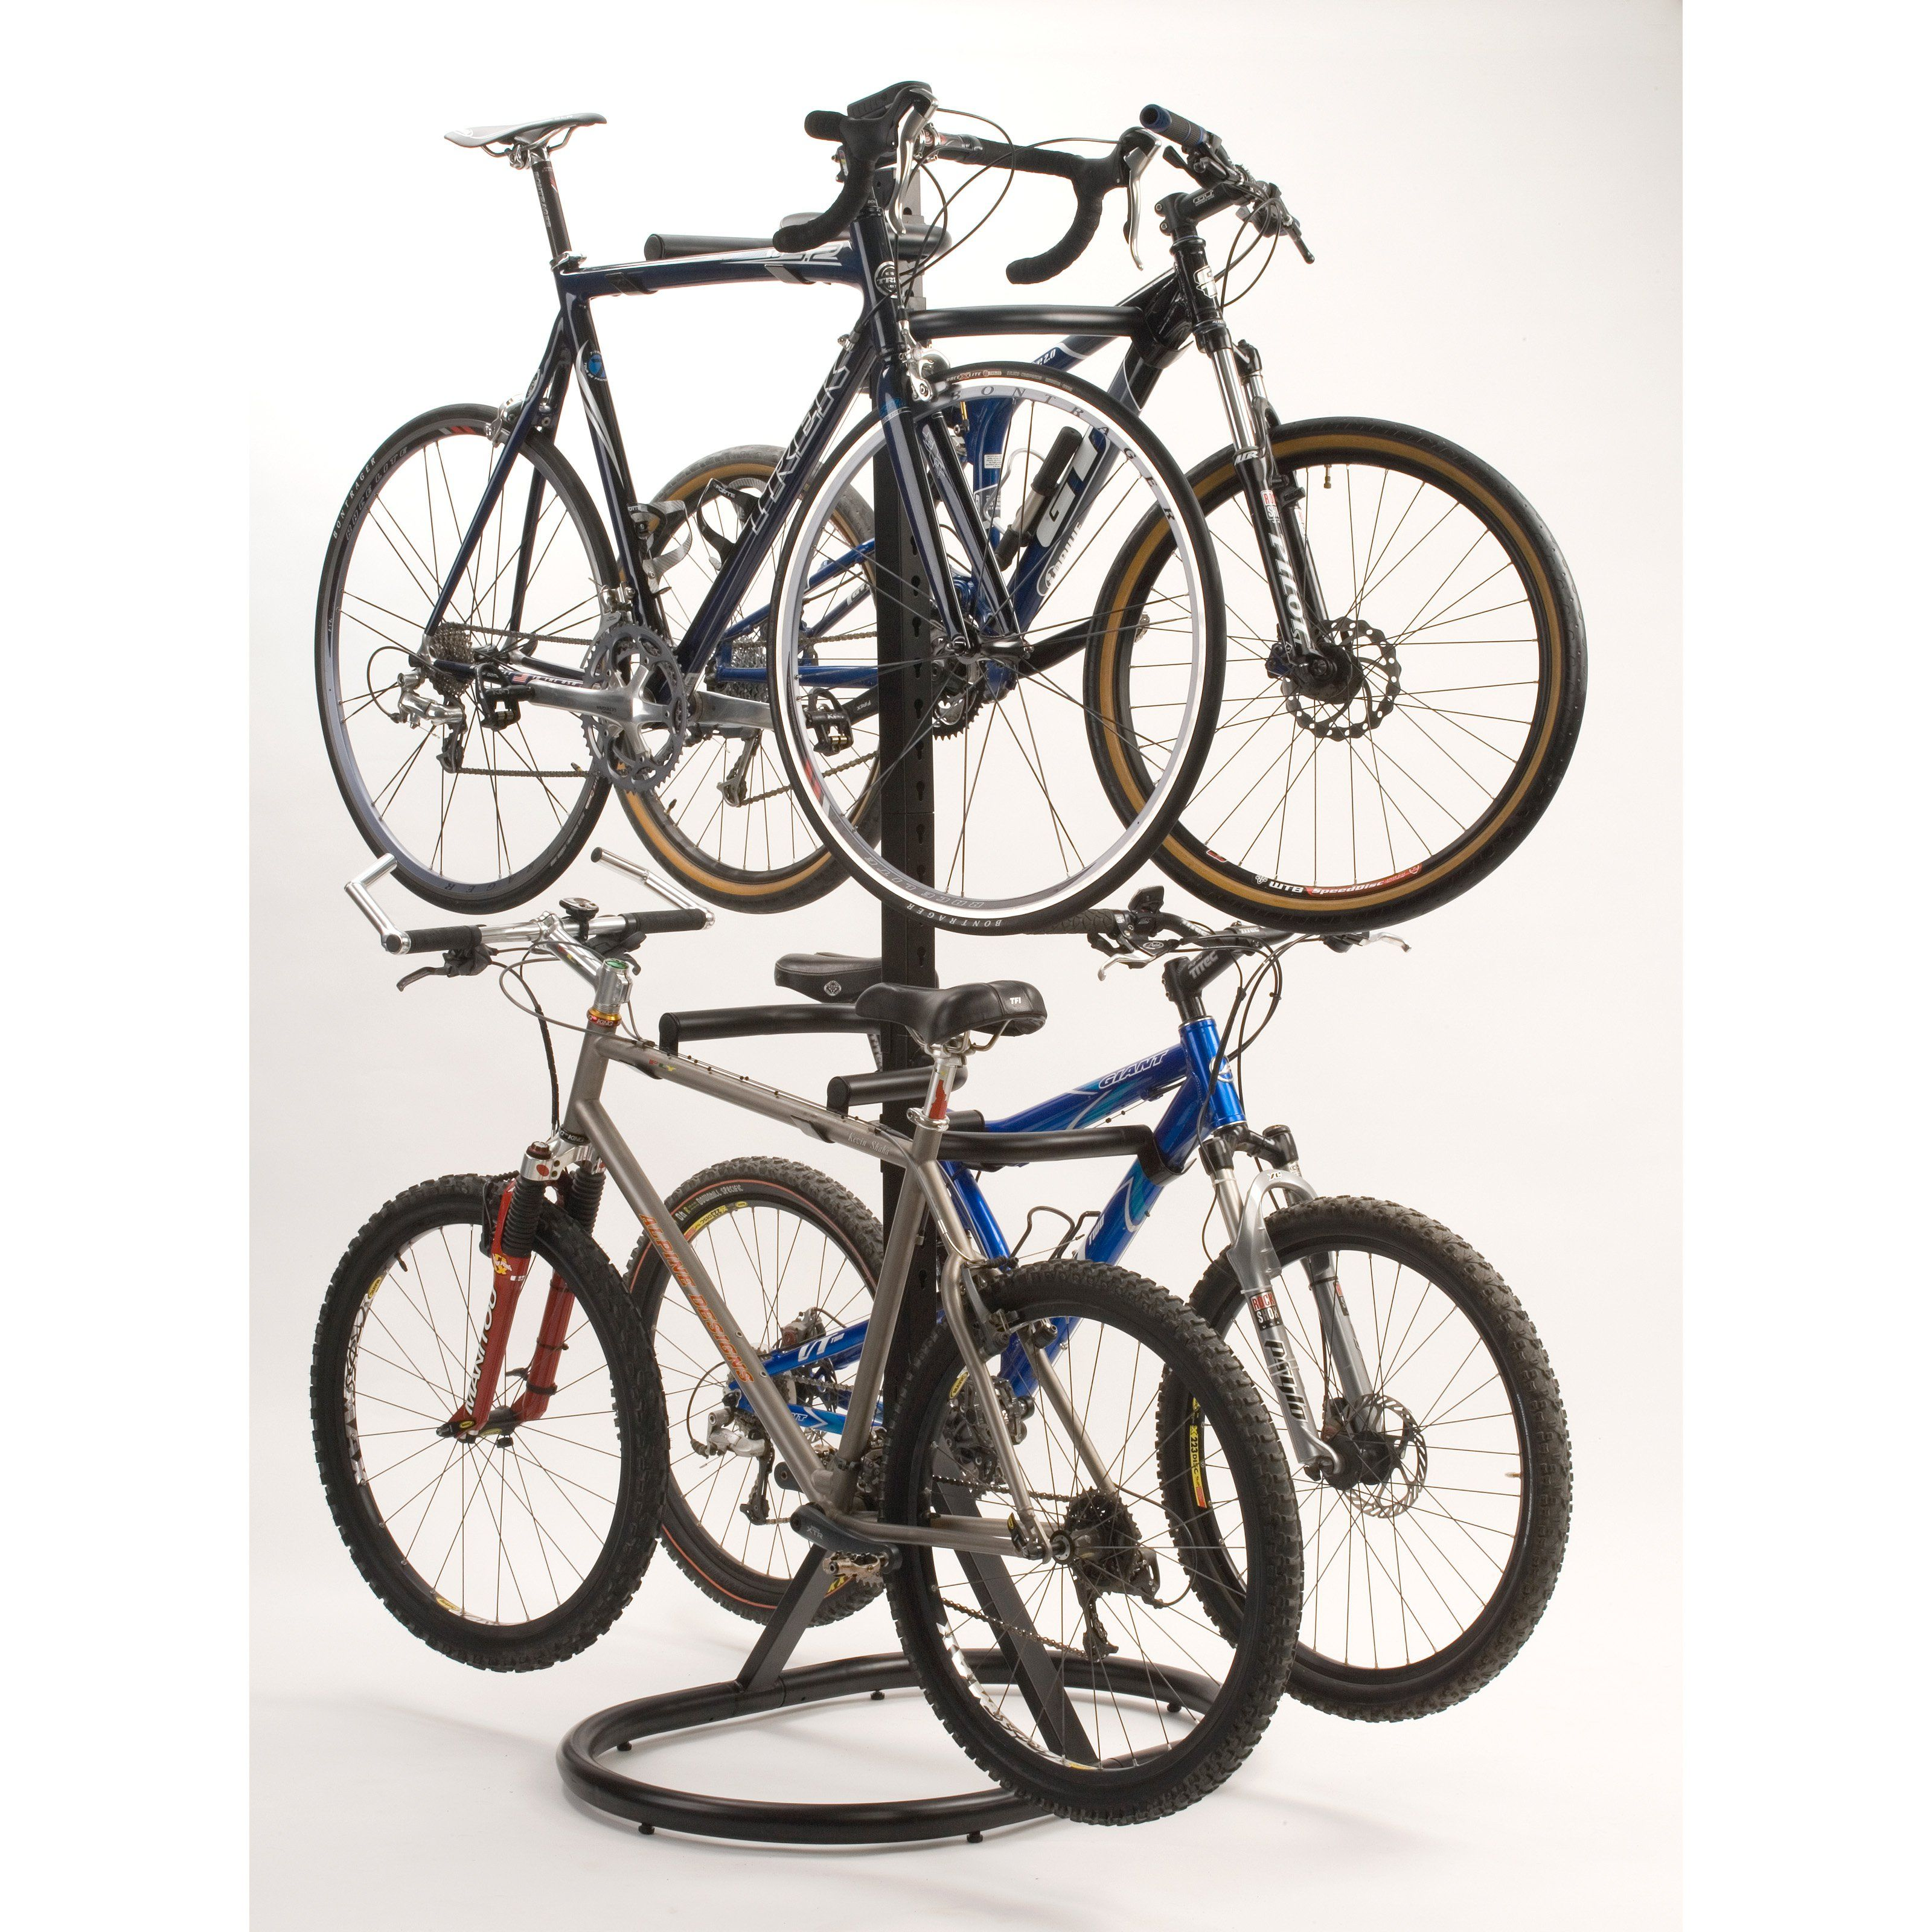 all wall indoor plb learn bike apartment racor ceiling pin freestanding pro racks floor the rack garage storage about or amazon cycling com options two guide for gravity